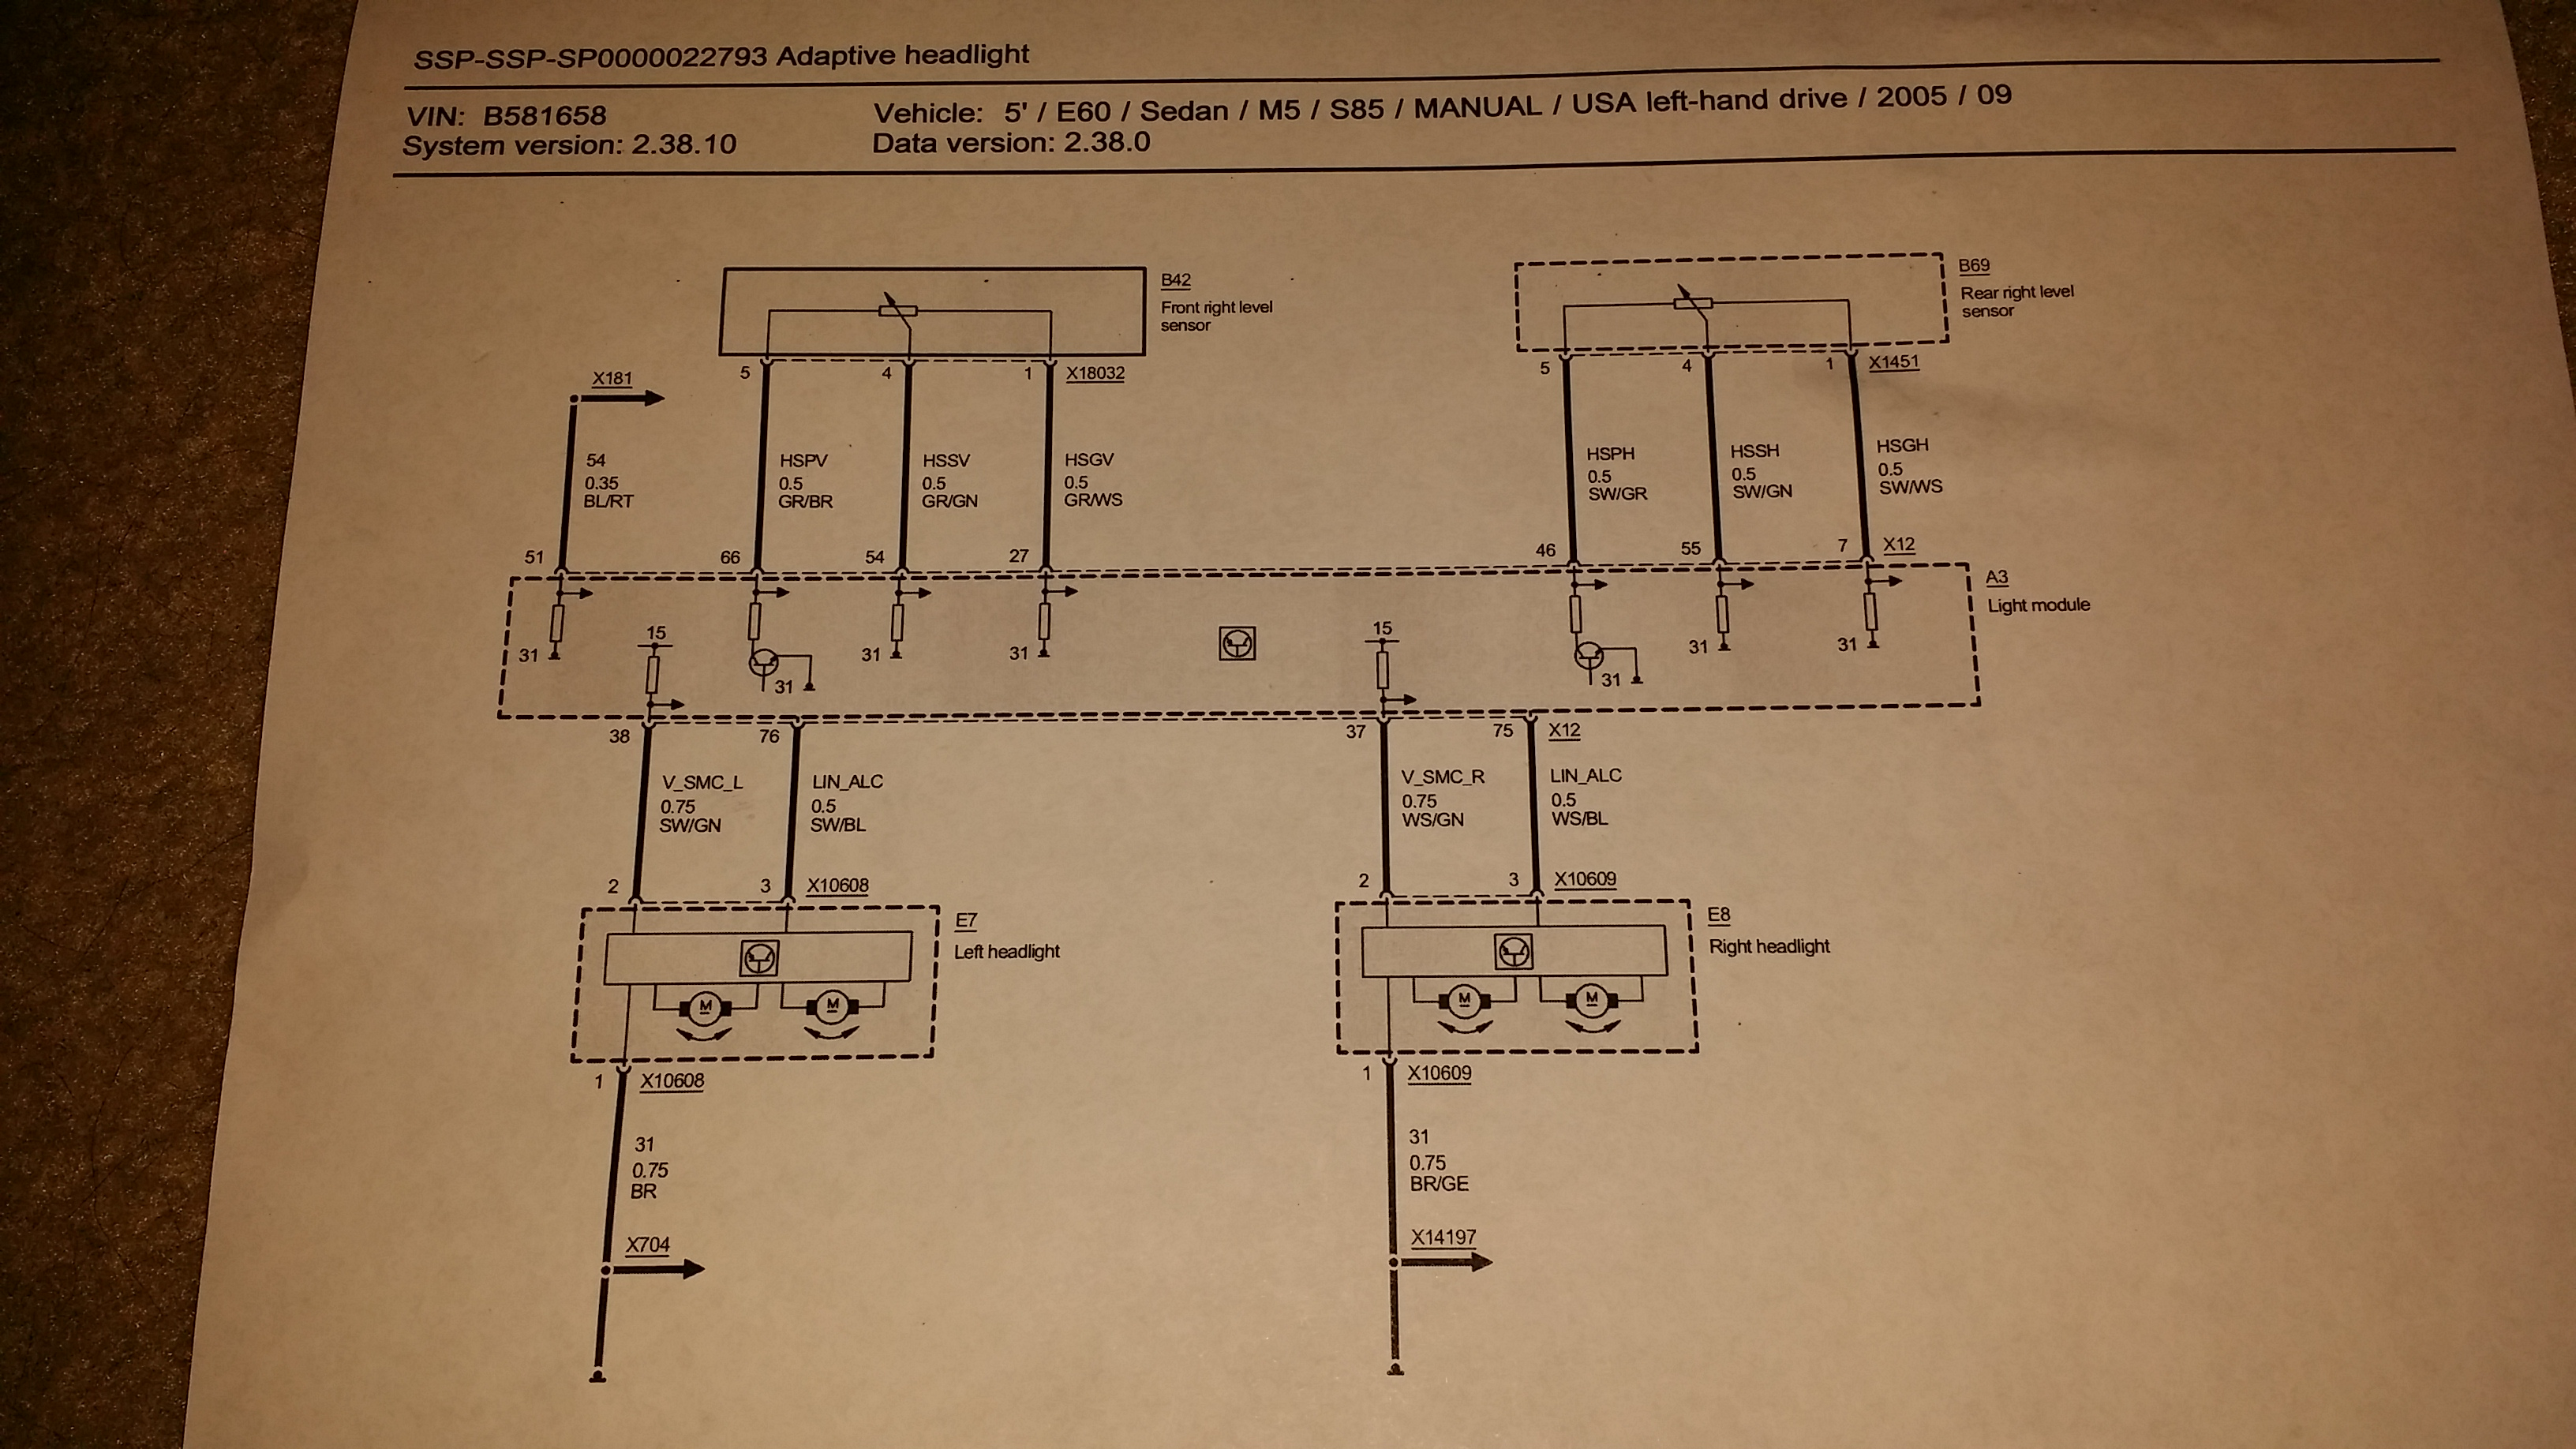 Bmw E60 Wiring Diagram 22 Images Diagrams Wds Java 392354d1395289381 Pre Lci Inside 20140319 215048 M5 Forum And